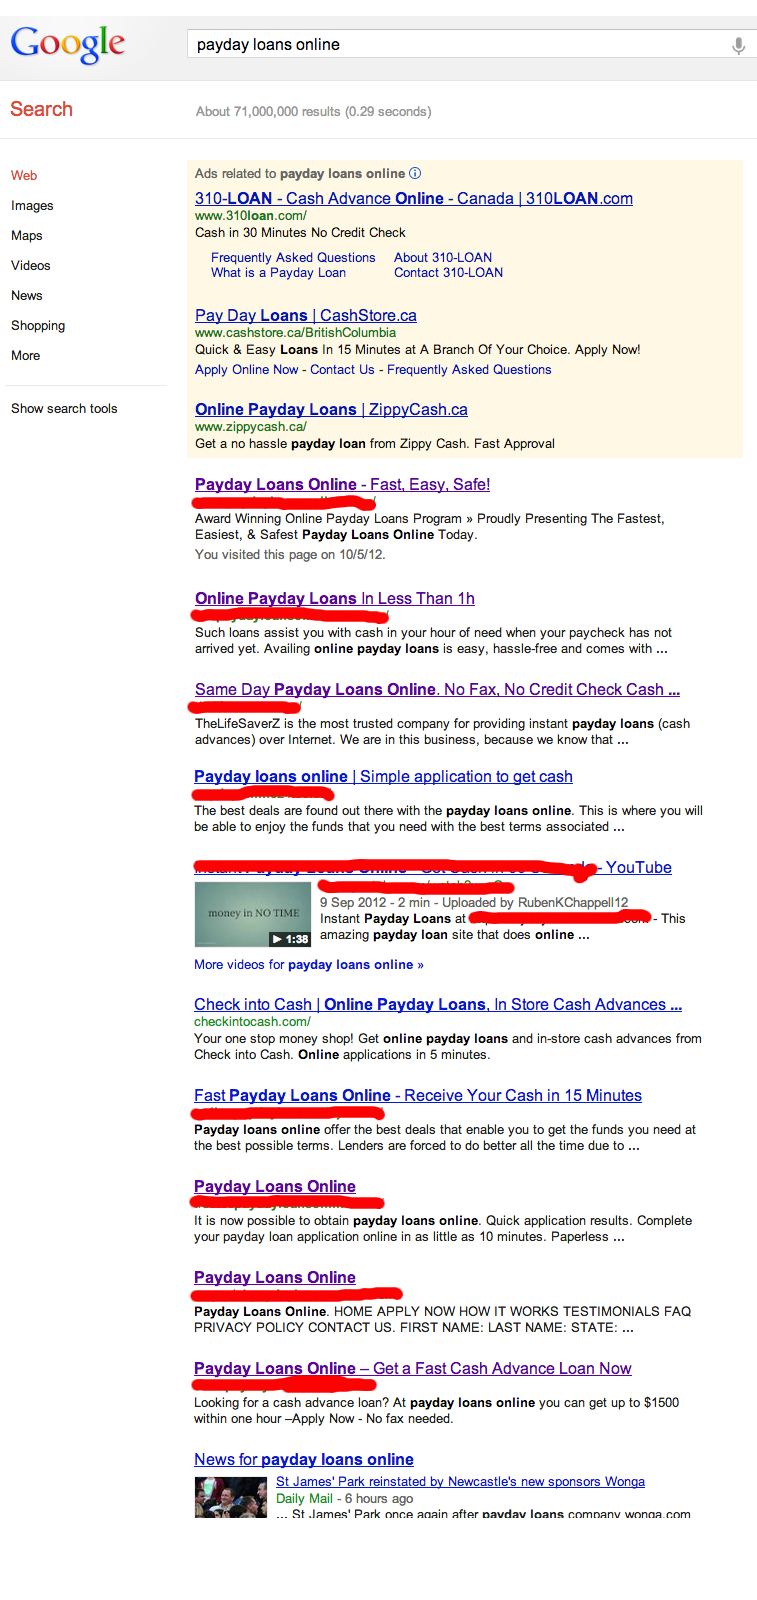 google spam afterupdates Spam Still King In Google SERPs